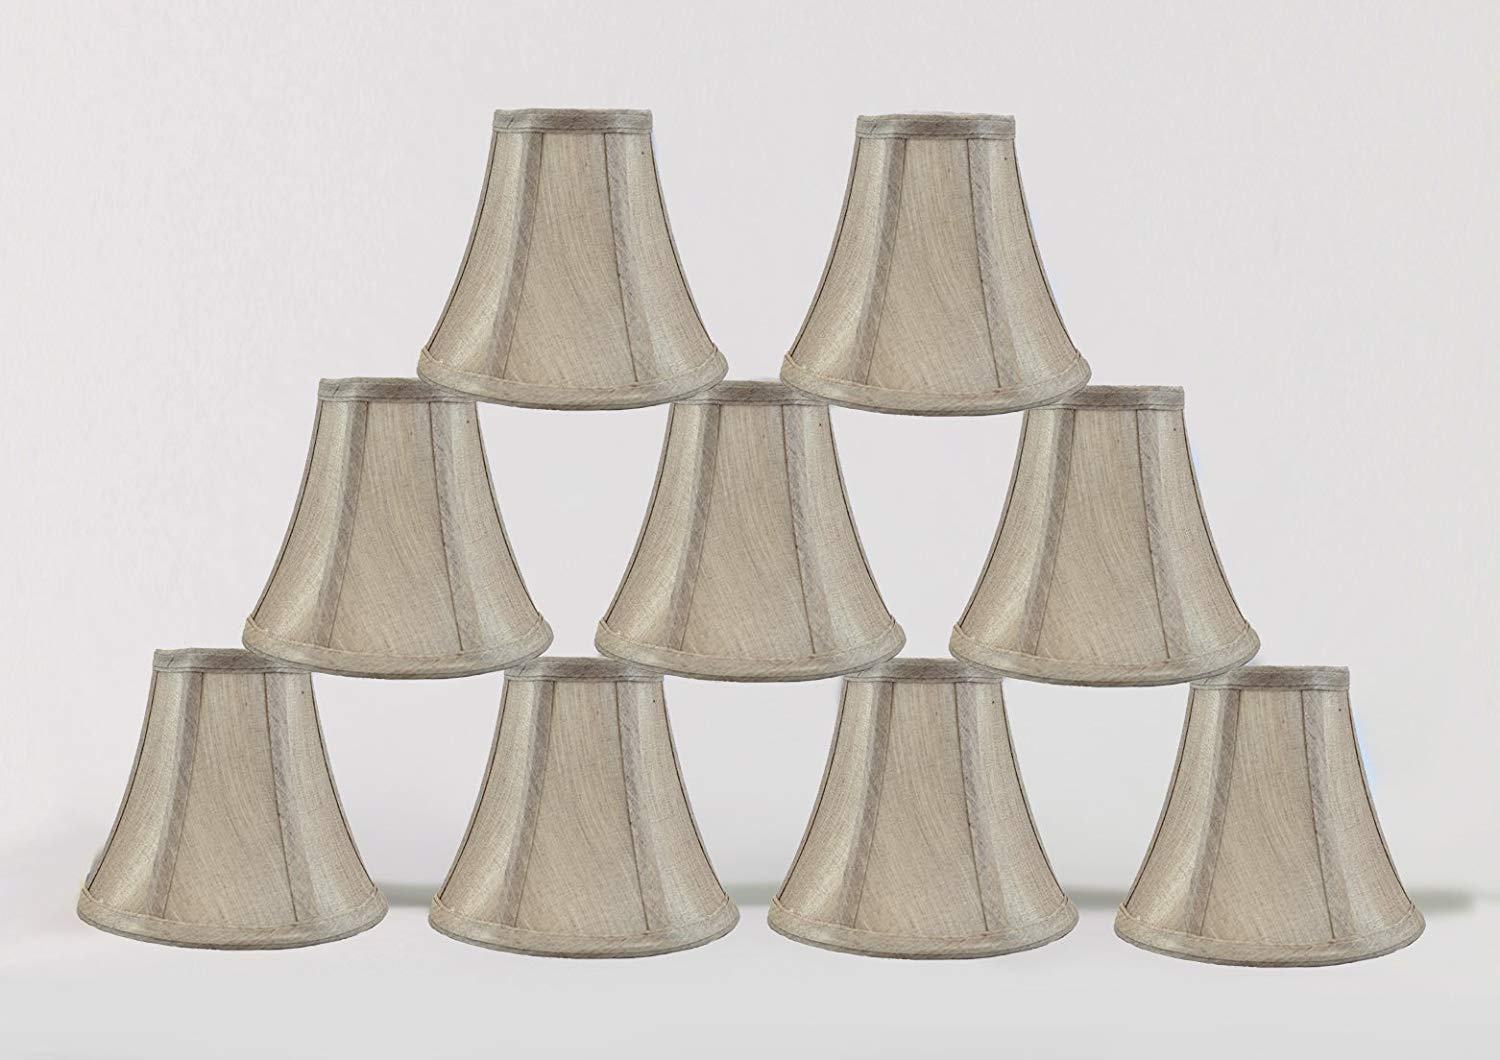 Urbanest 1100848d 6-inch Chandelier Lamp Shade, Champagne Set of 9